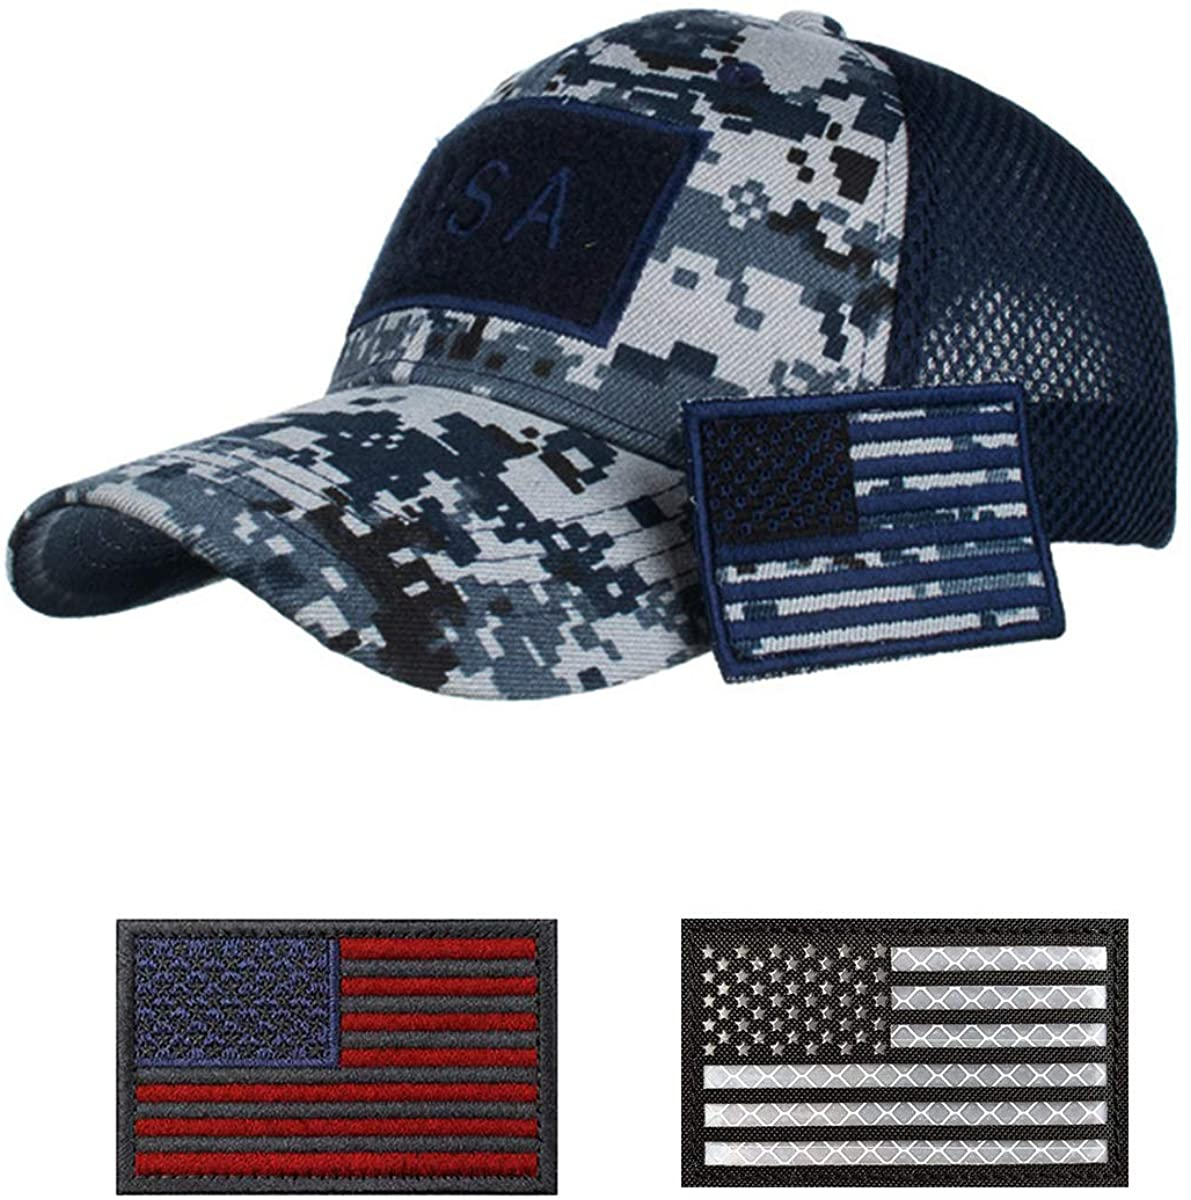 Uphily Tactical Hat with IR Reflective Military Patches, Adjustable Operator Cap, Tactical Mesh ACU Flag Army Hats for Men Work, Gym, Hiking Hunting and More